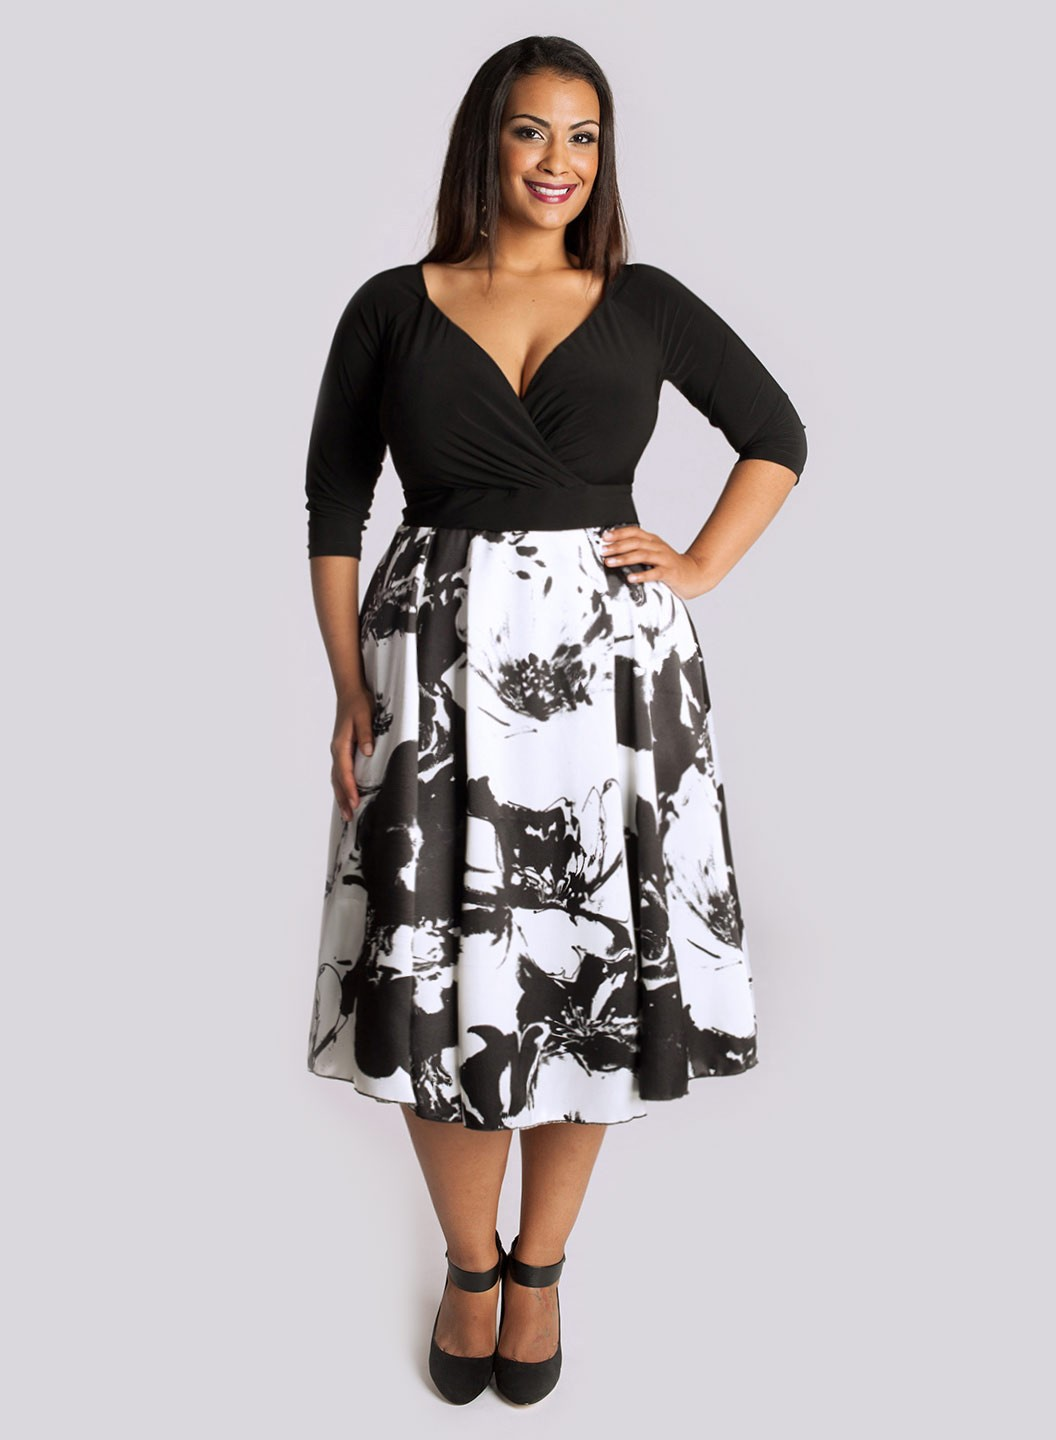 Plus Size Designer Women's Clothing Inexpensive Plus Size Designer